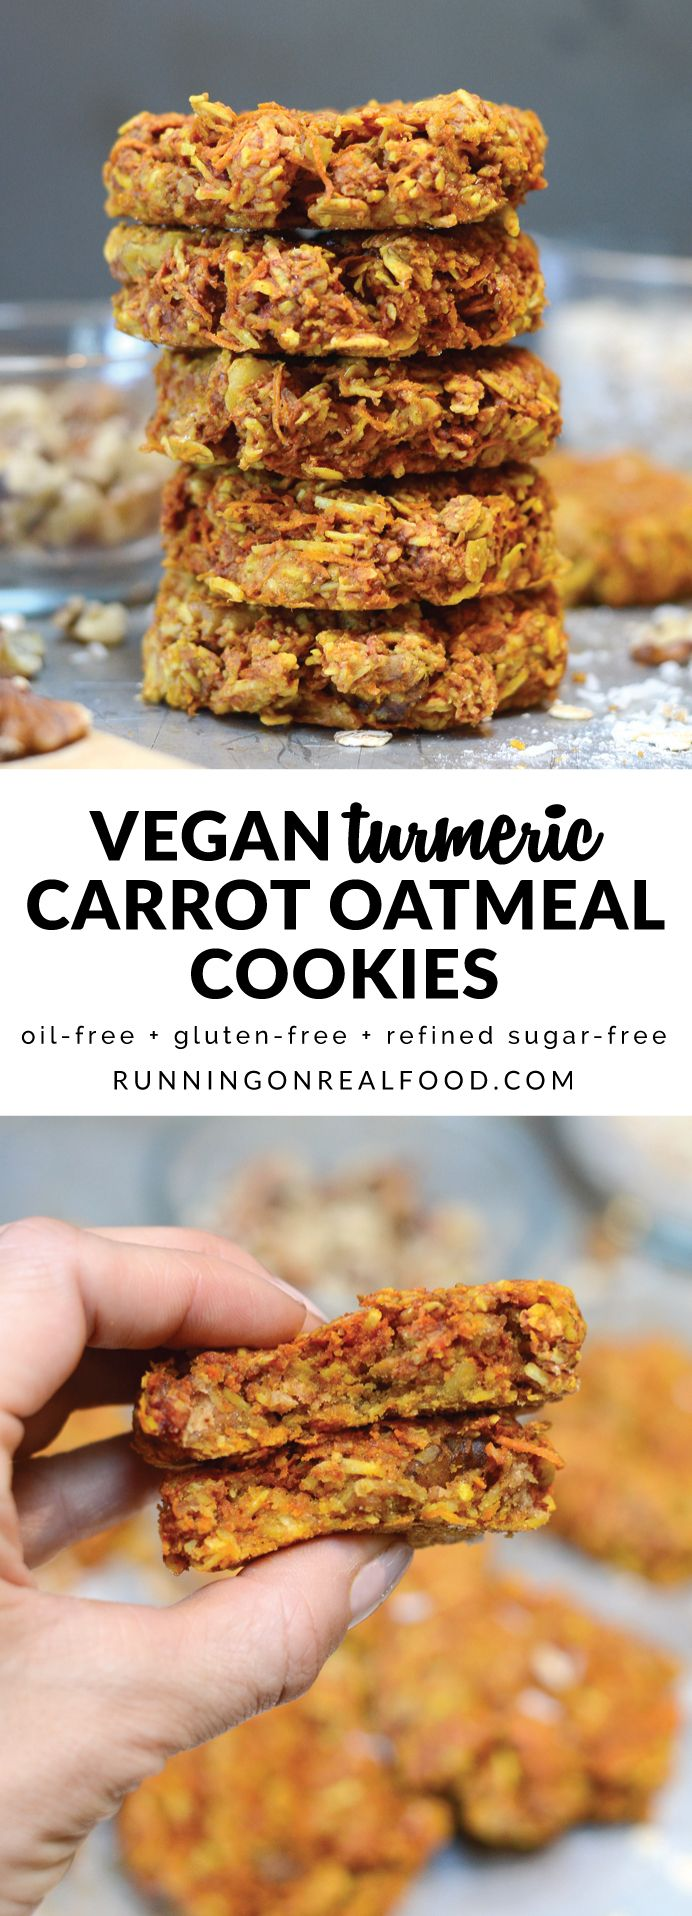 These vegan turmeric carrot oatmeal cookies have the most wonderful, hearty texture. They're oil-free, naturally sweetened, gluten-free and taste amazing! Loaded with nutrition from walnuts, natural peanut butter, coconut, turmeric, carrots and rolled oats. via @runonrealfood